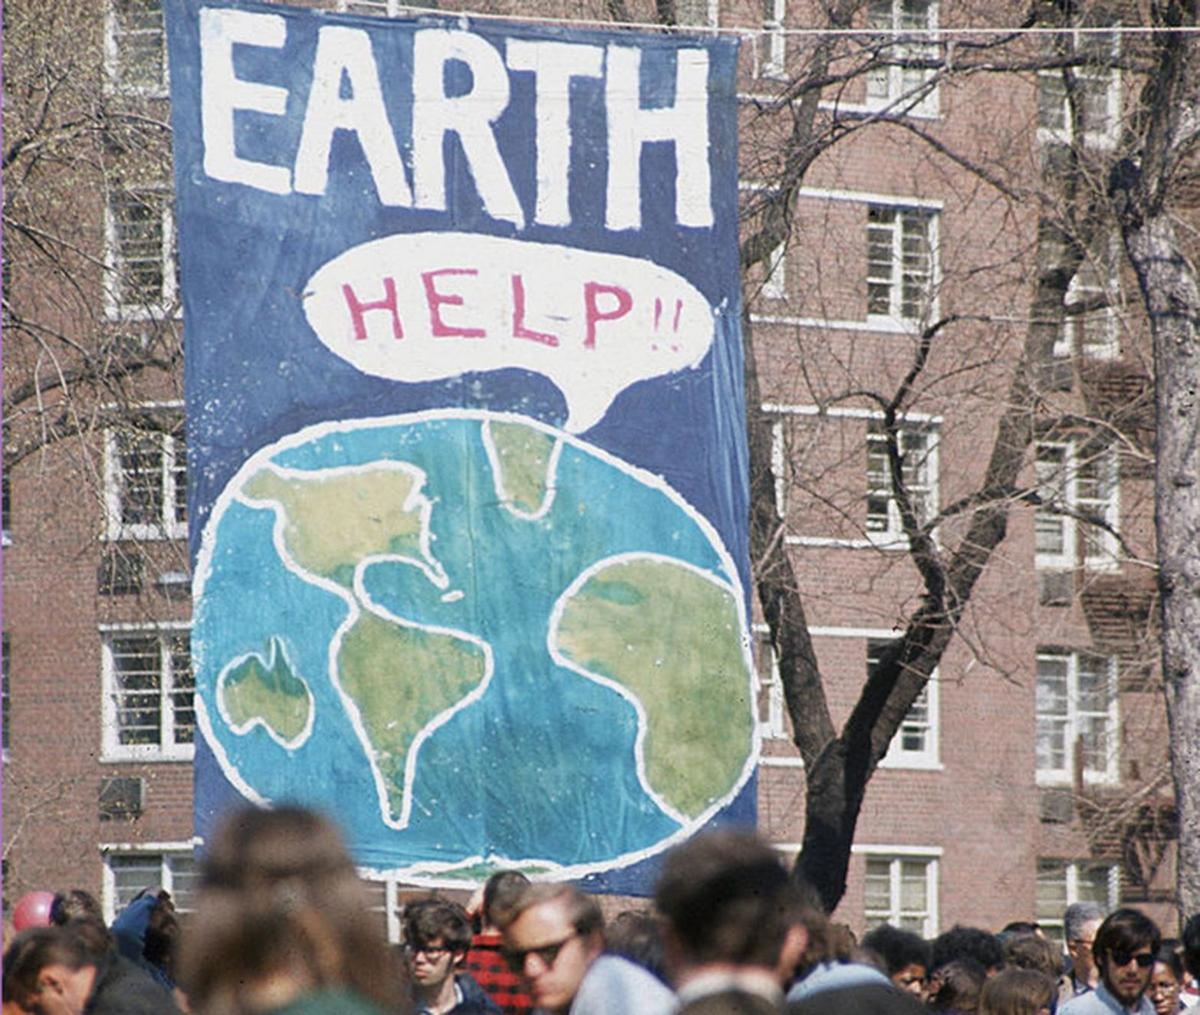 Robert Miller: Fifty years later, we need a new Earth Day